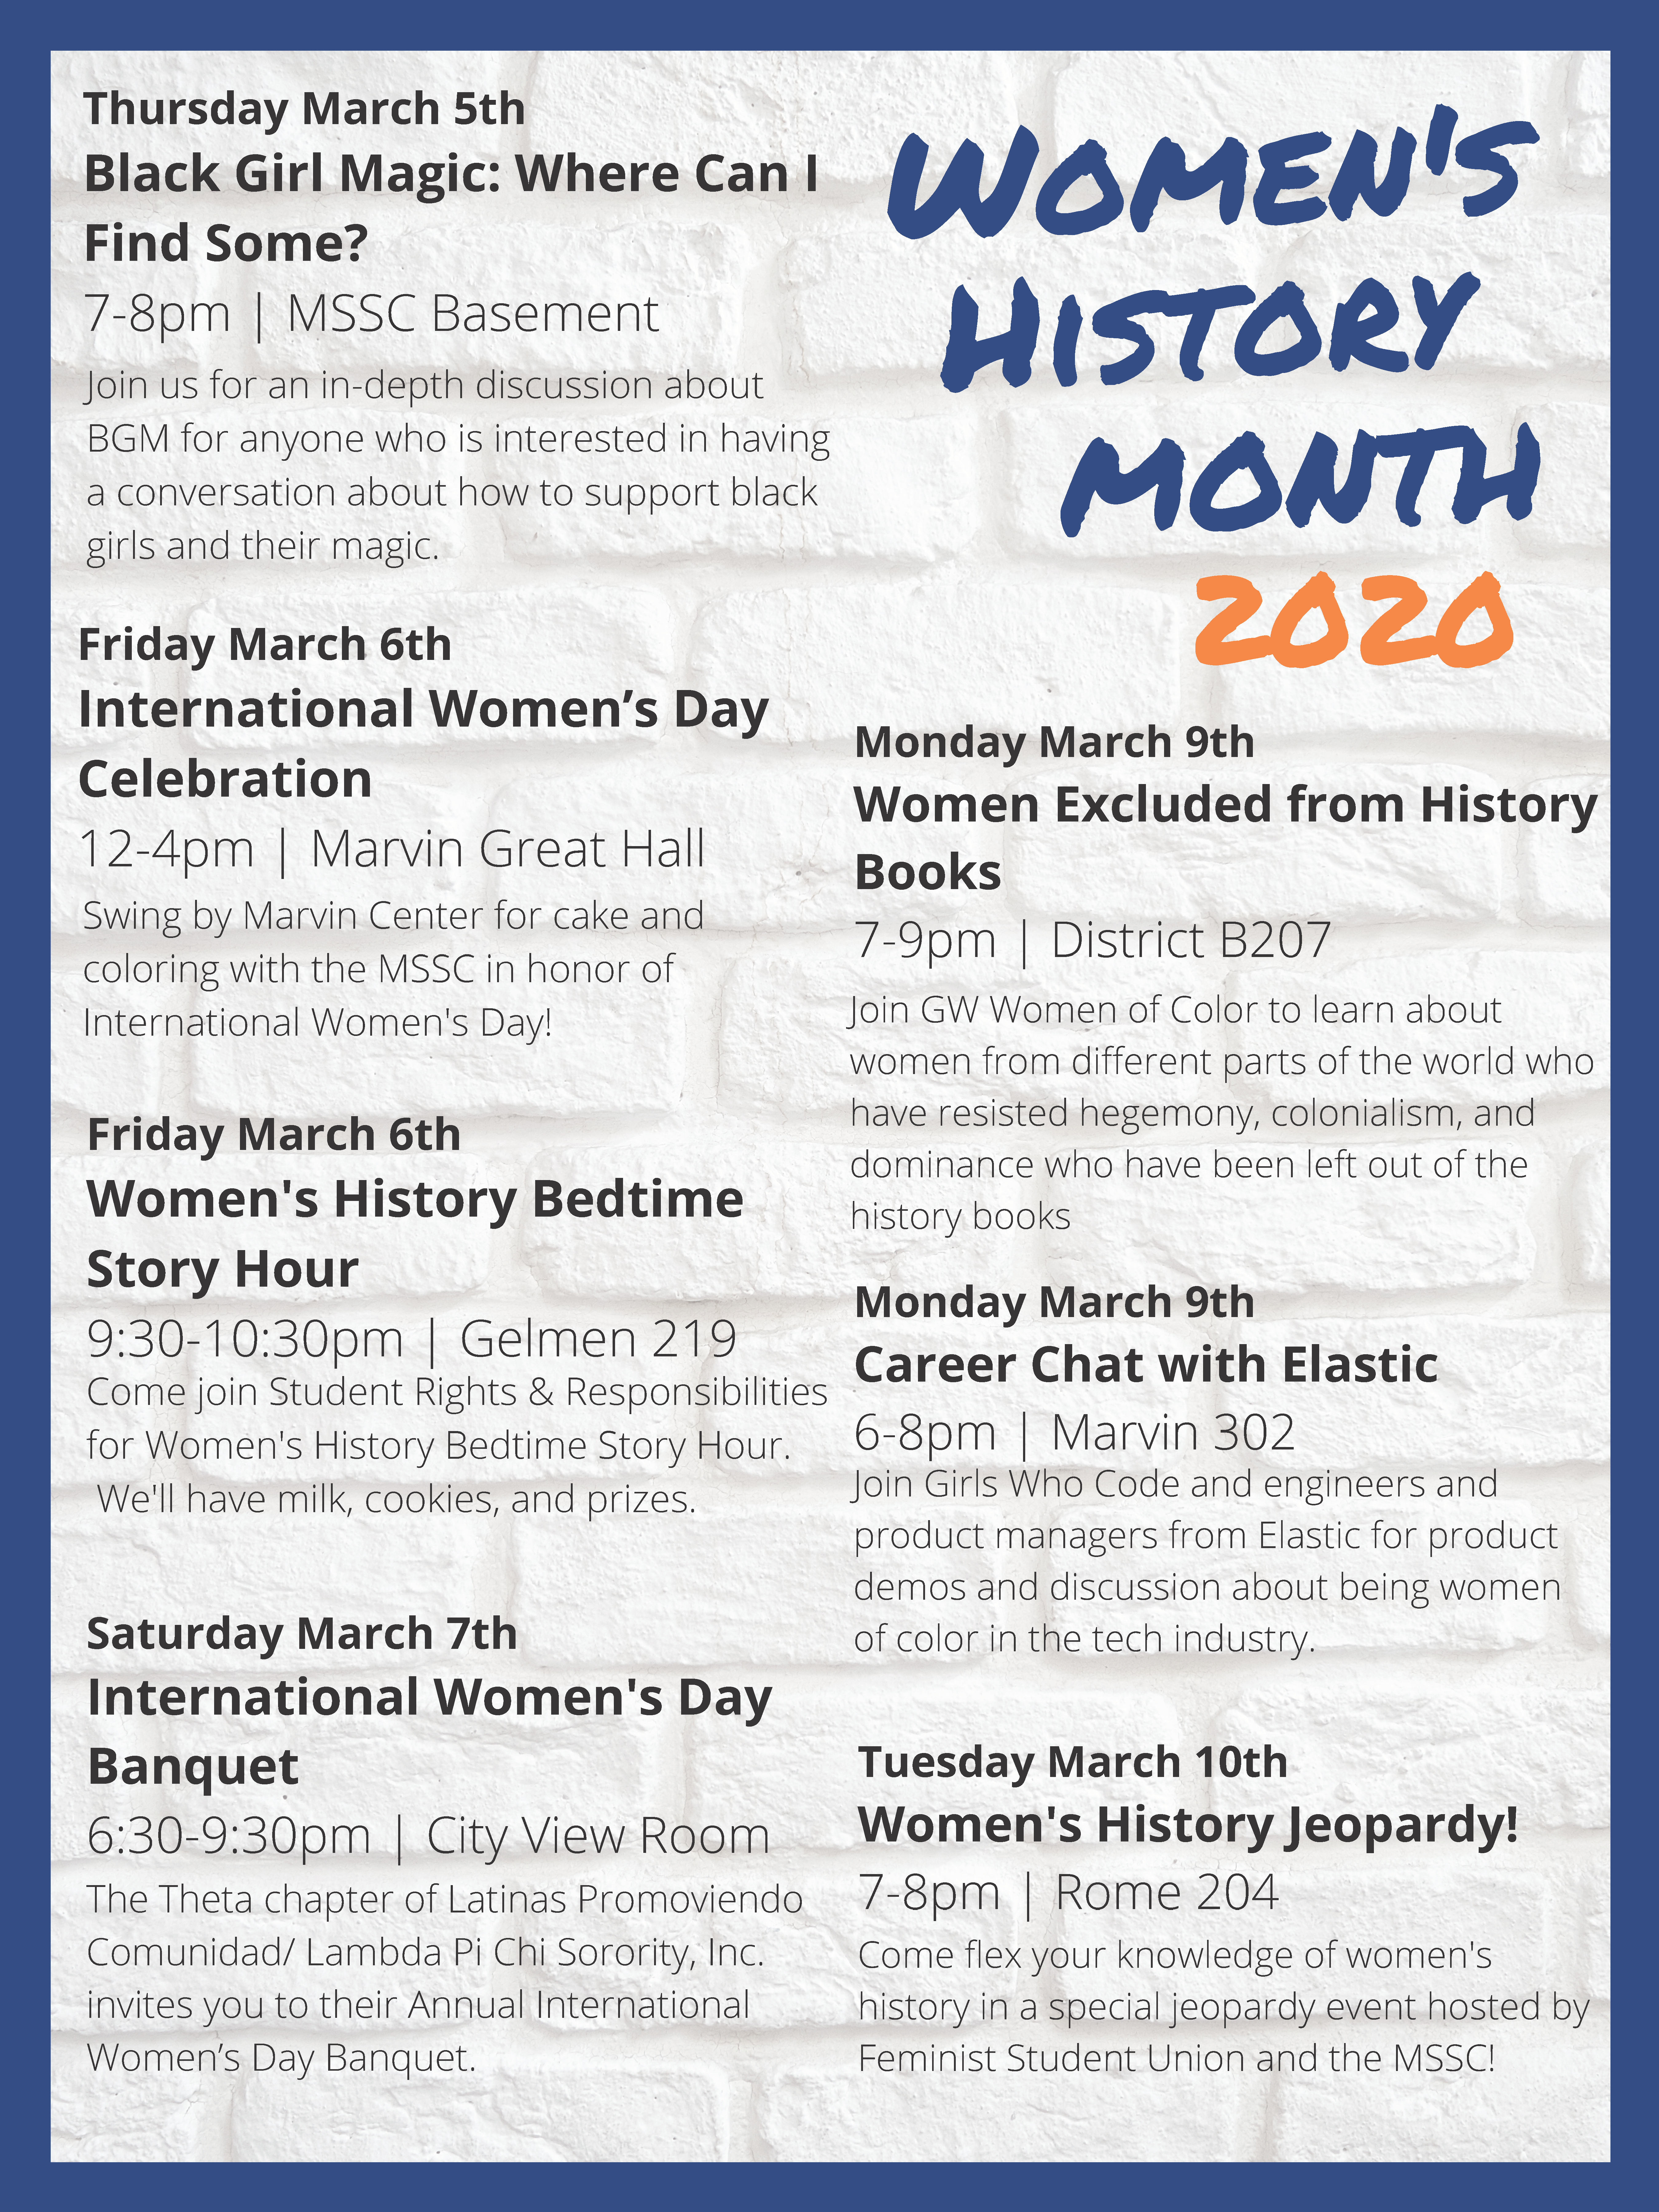 Women's History Month Calendar Poster, see above for full written schedule.